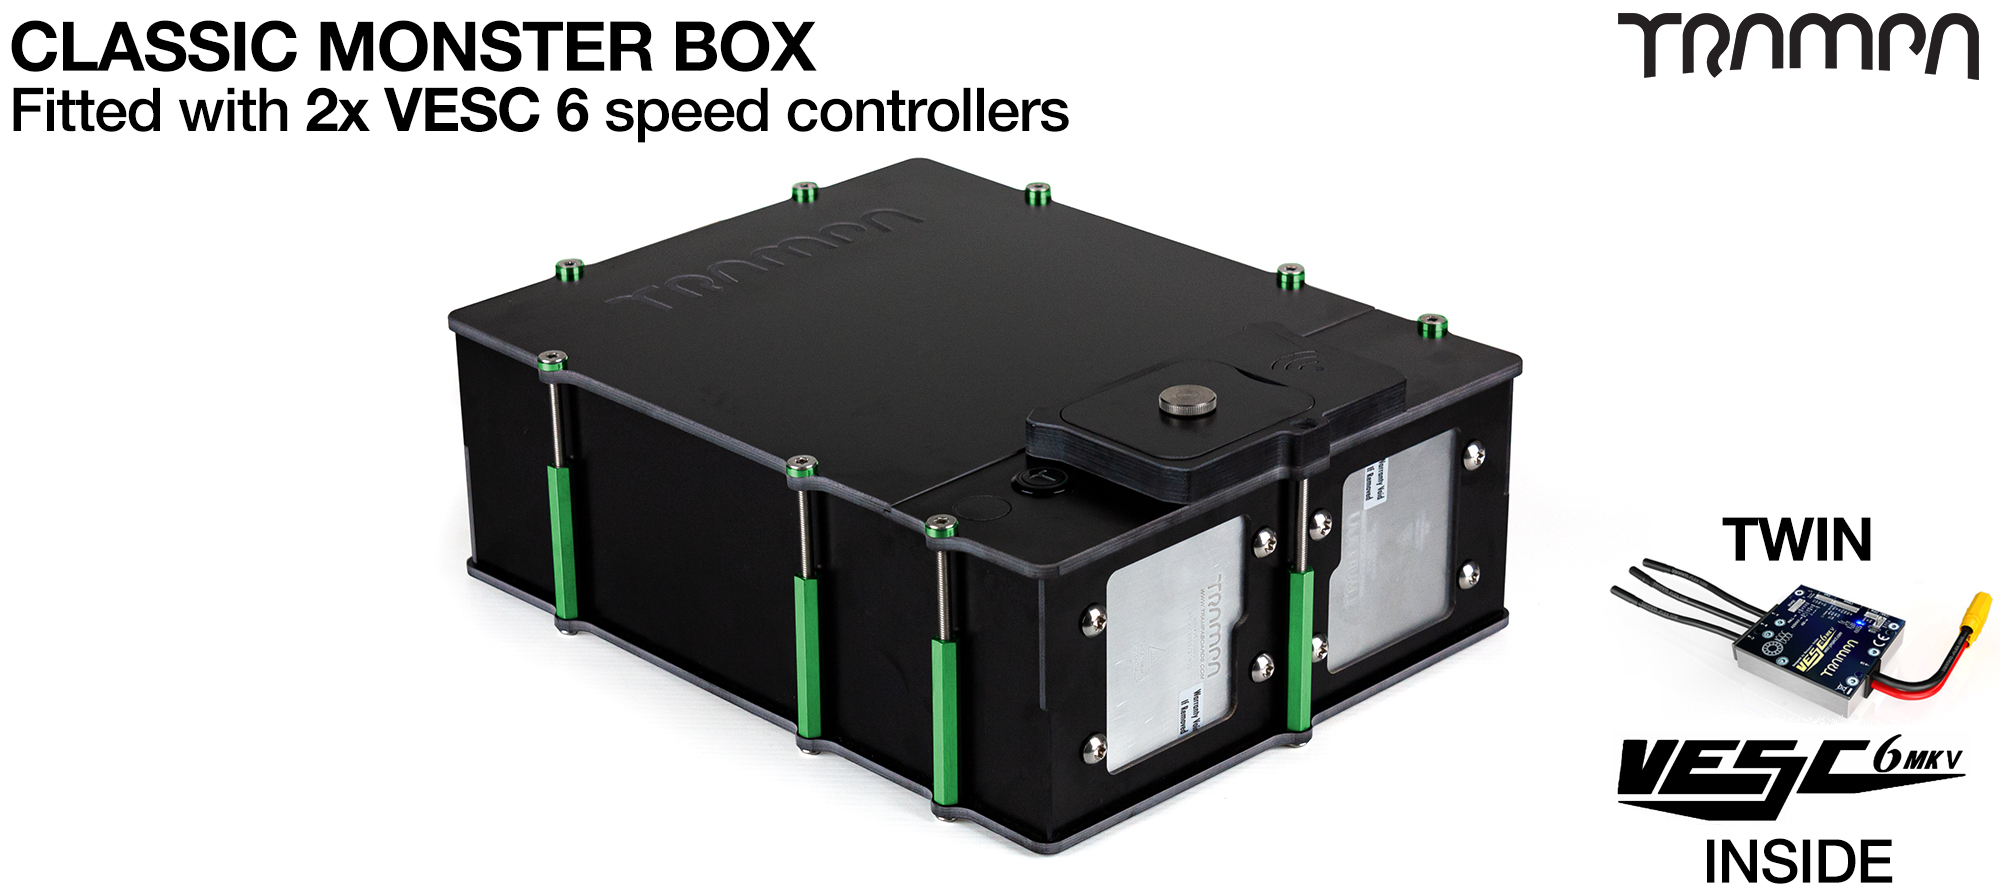 MONSTER Box MkIV supplied with 2x VESC 6 & 1x Externaly Mounted NRF VESC Connect Dongle & Cable  Fitted